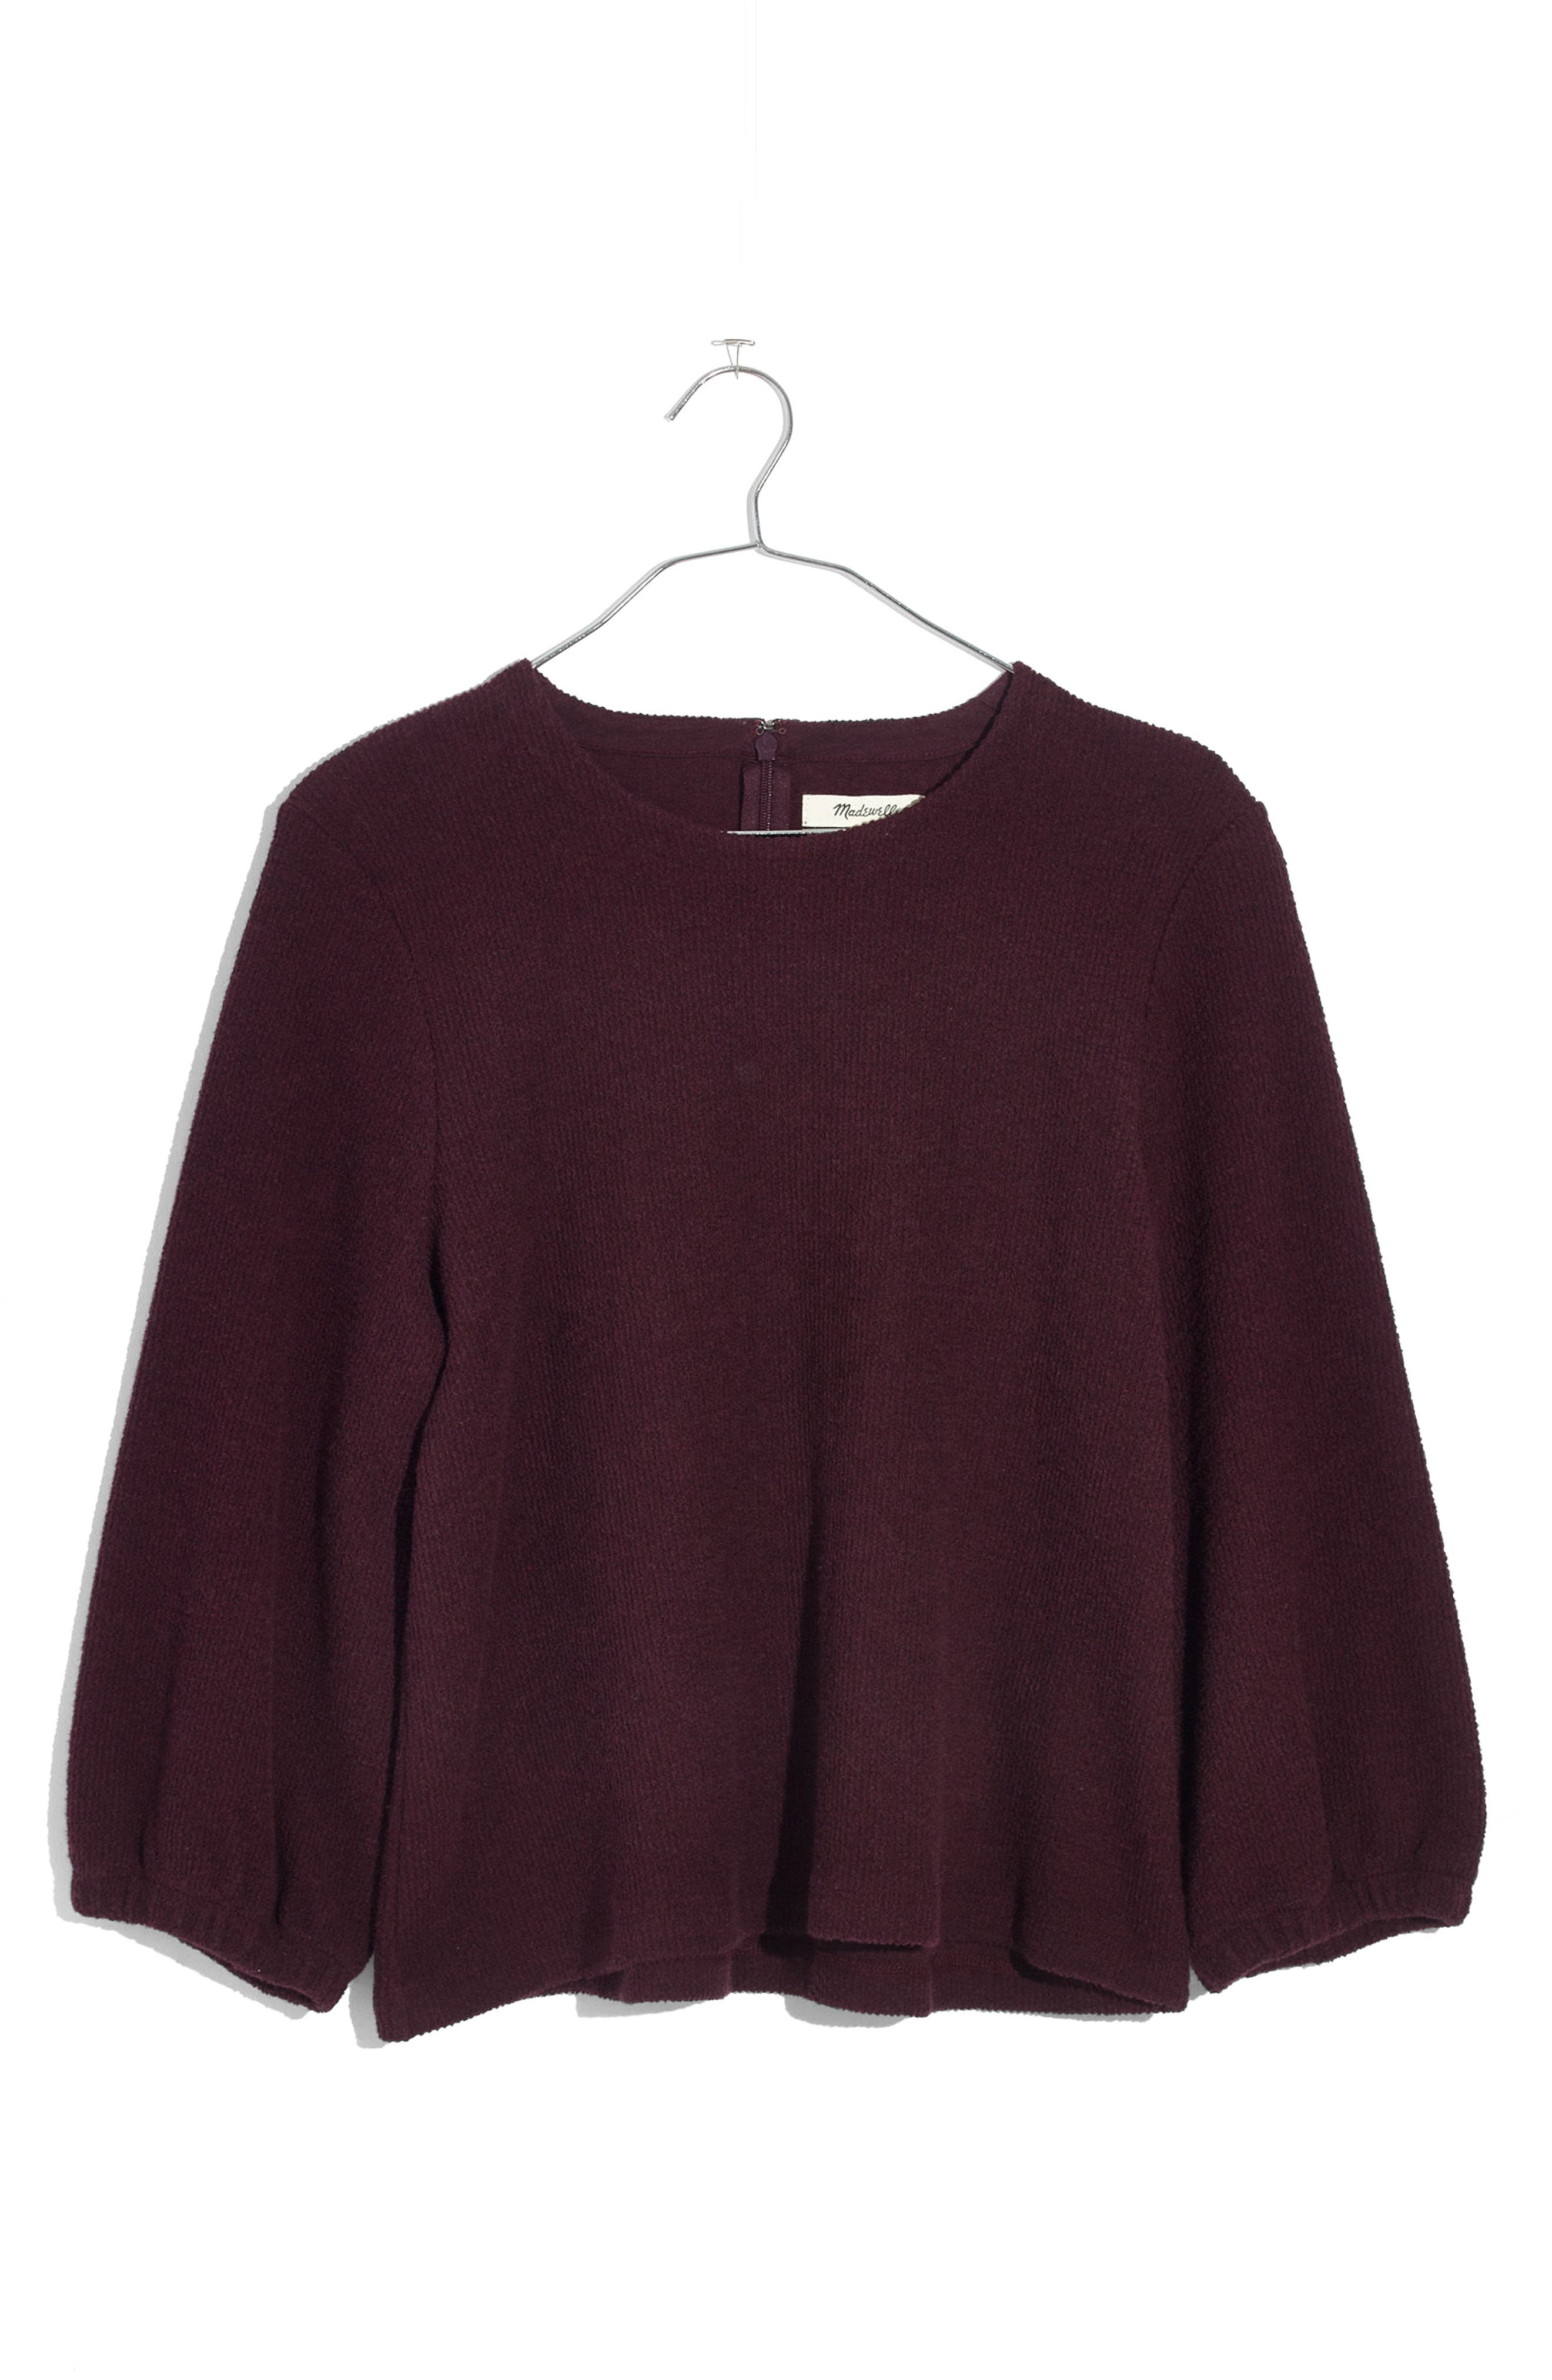 Shirred Sleeve Sweater,                             Alternate thumbnail 3, color,                             600